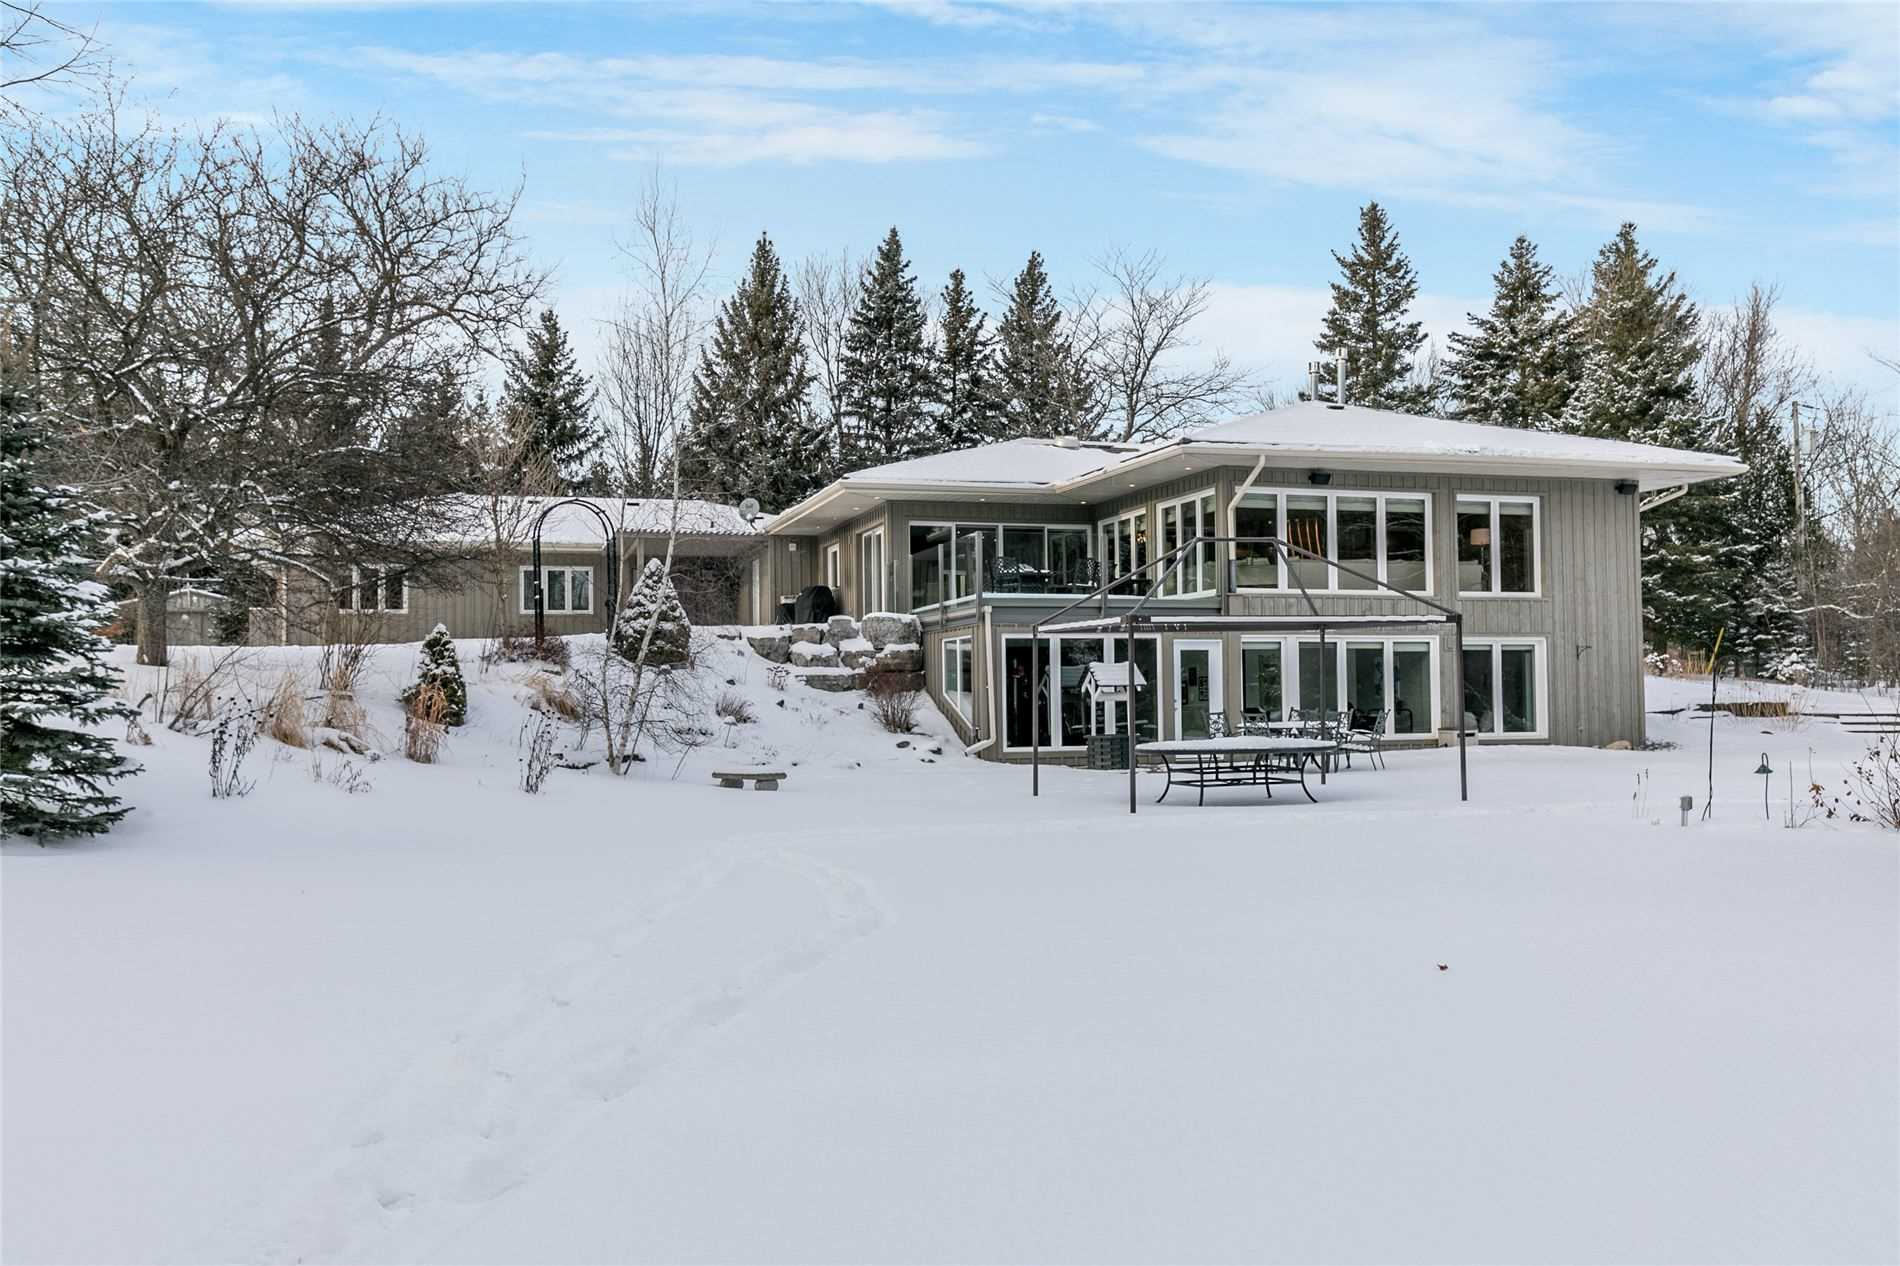 Rare Opportunity To Own 19.46 Pristine Acres In Caledon With The Credit River Running Through The Southend Of The Property And The Orangeville Golf Club A Short Walk Through Your Woods. Complete Privacy And Tranquility. The Main Home Is Stunning! Two Kitchens, Open Concept Design, Walk Out Basement. Separate Full Nanny/Inlaw Apartment With 2 Bedrooms.  Detached 3.5 Car Garage. Possible Chance For Future Severance. Great For Multi Generational Families,